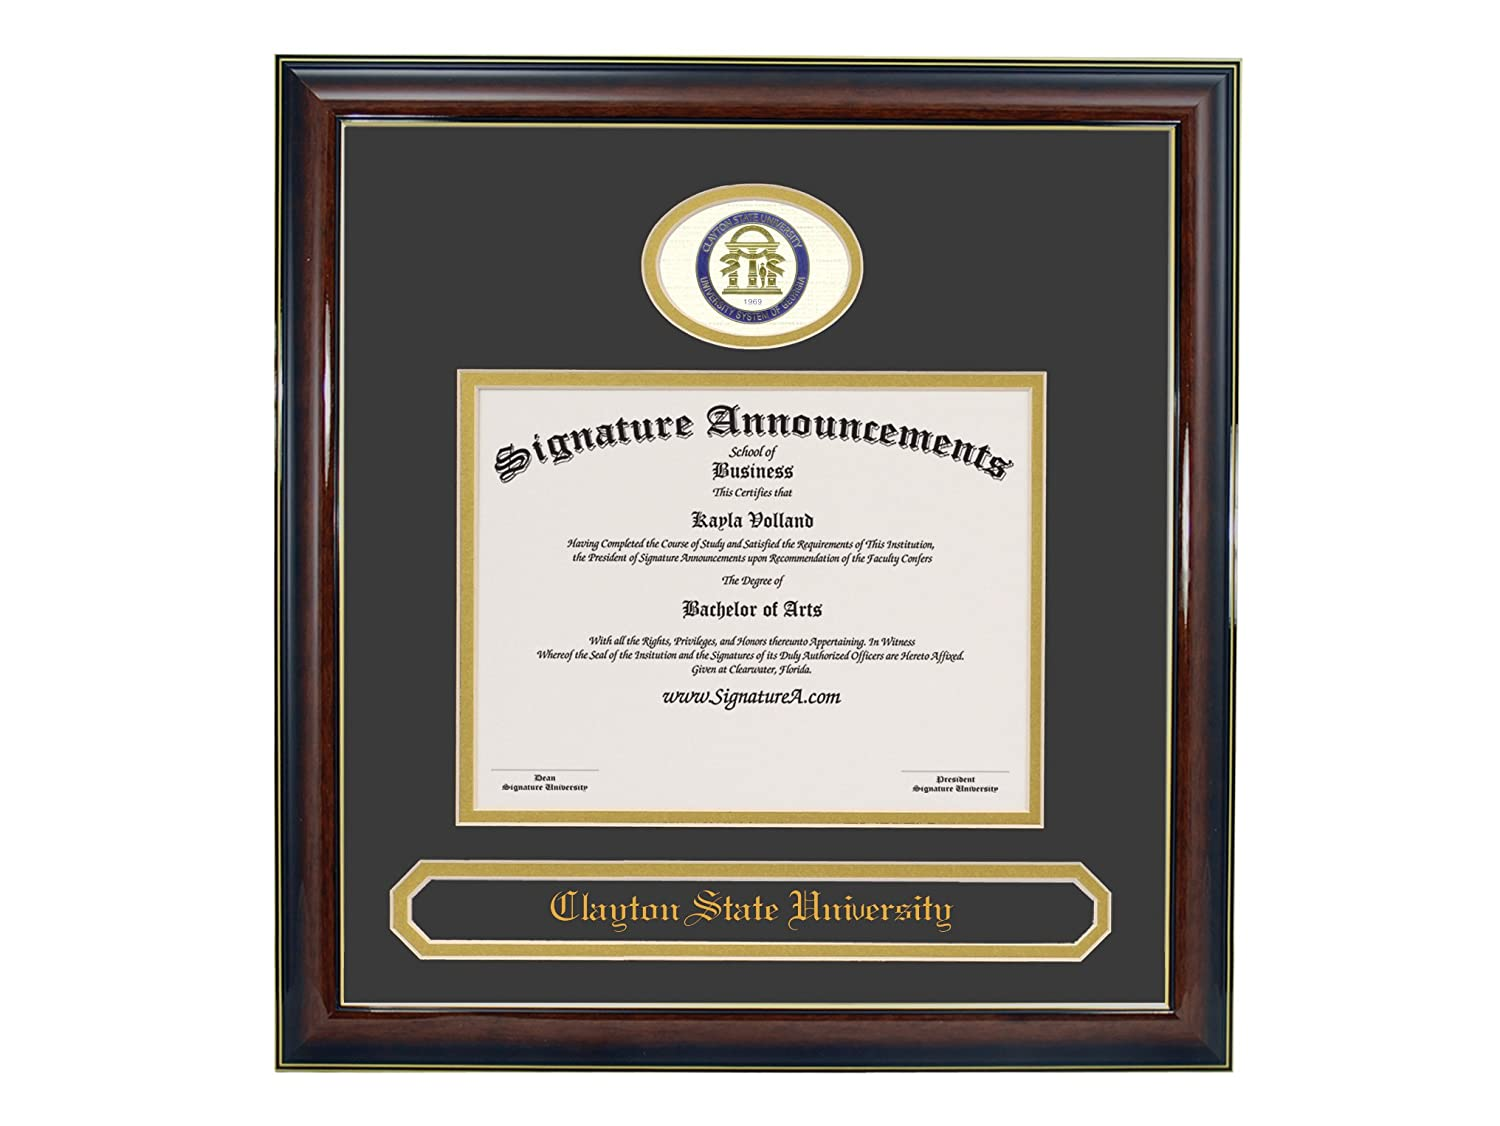 Professional//Doctor Sculpted Foil Seal /& Name Graduation Diploma Frame 16 x 16 Gold Accent Gloss Mahogany Signature Announcements Clayton-State-University Undergraduate